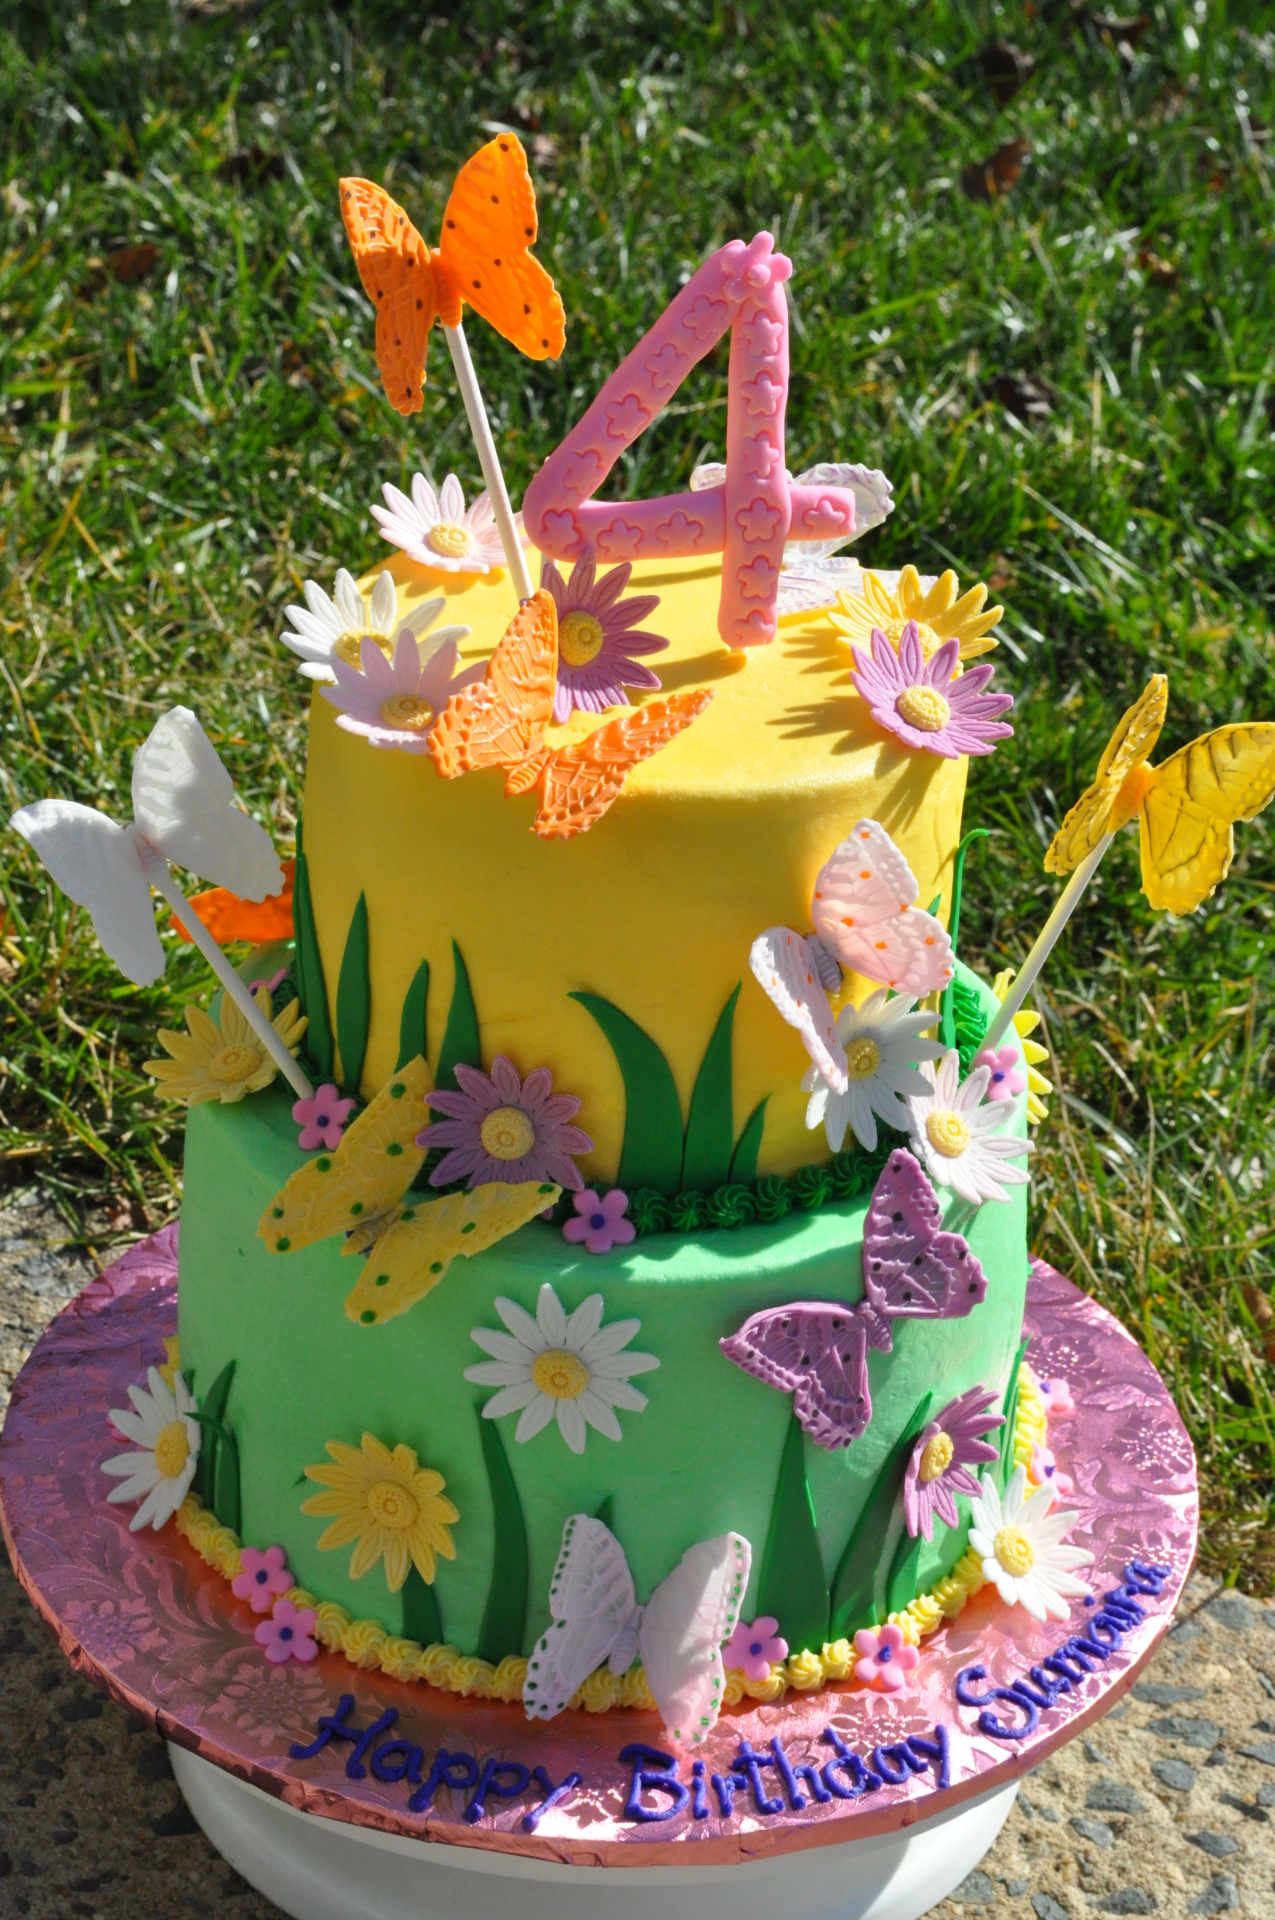 Butterfly birthday cake,spring theme cake